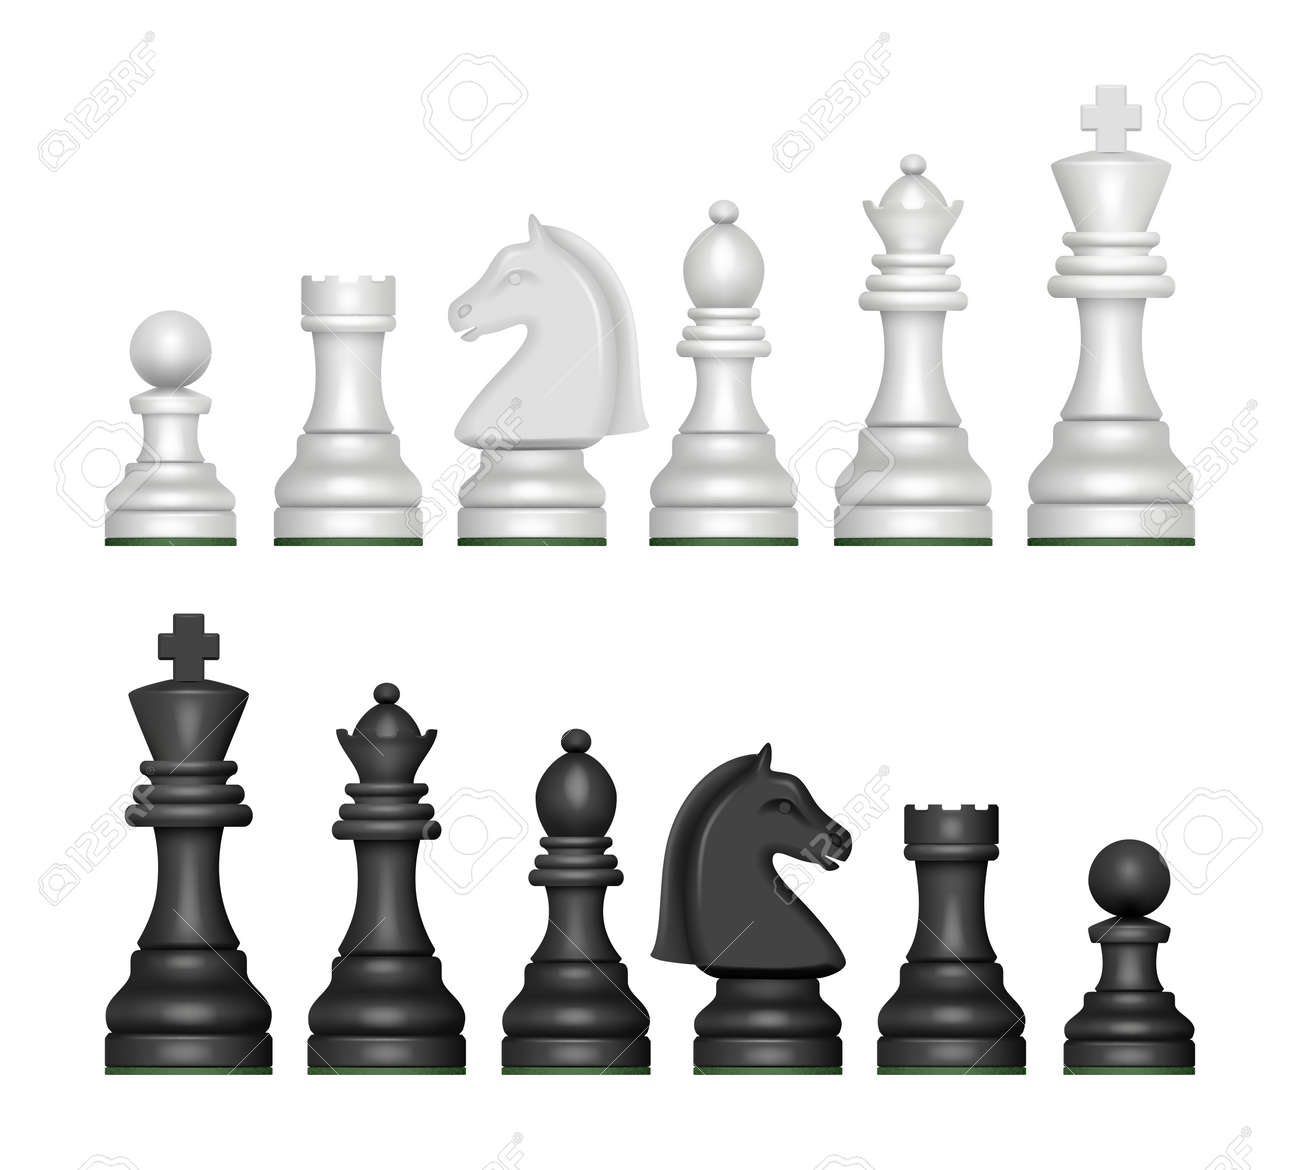 Chess figures. Strategy game symbols pawn horse knights king and queen decent vector realistic pictures - 168736915